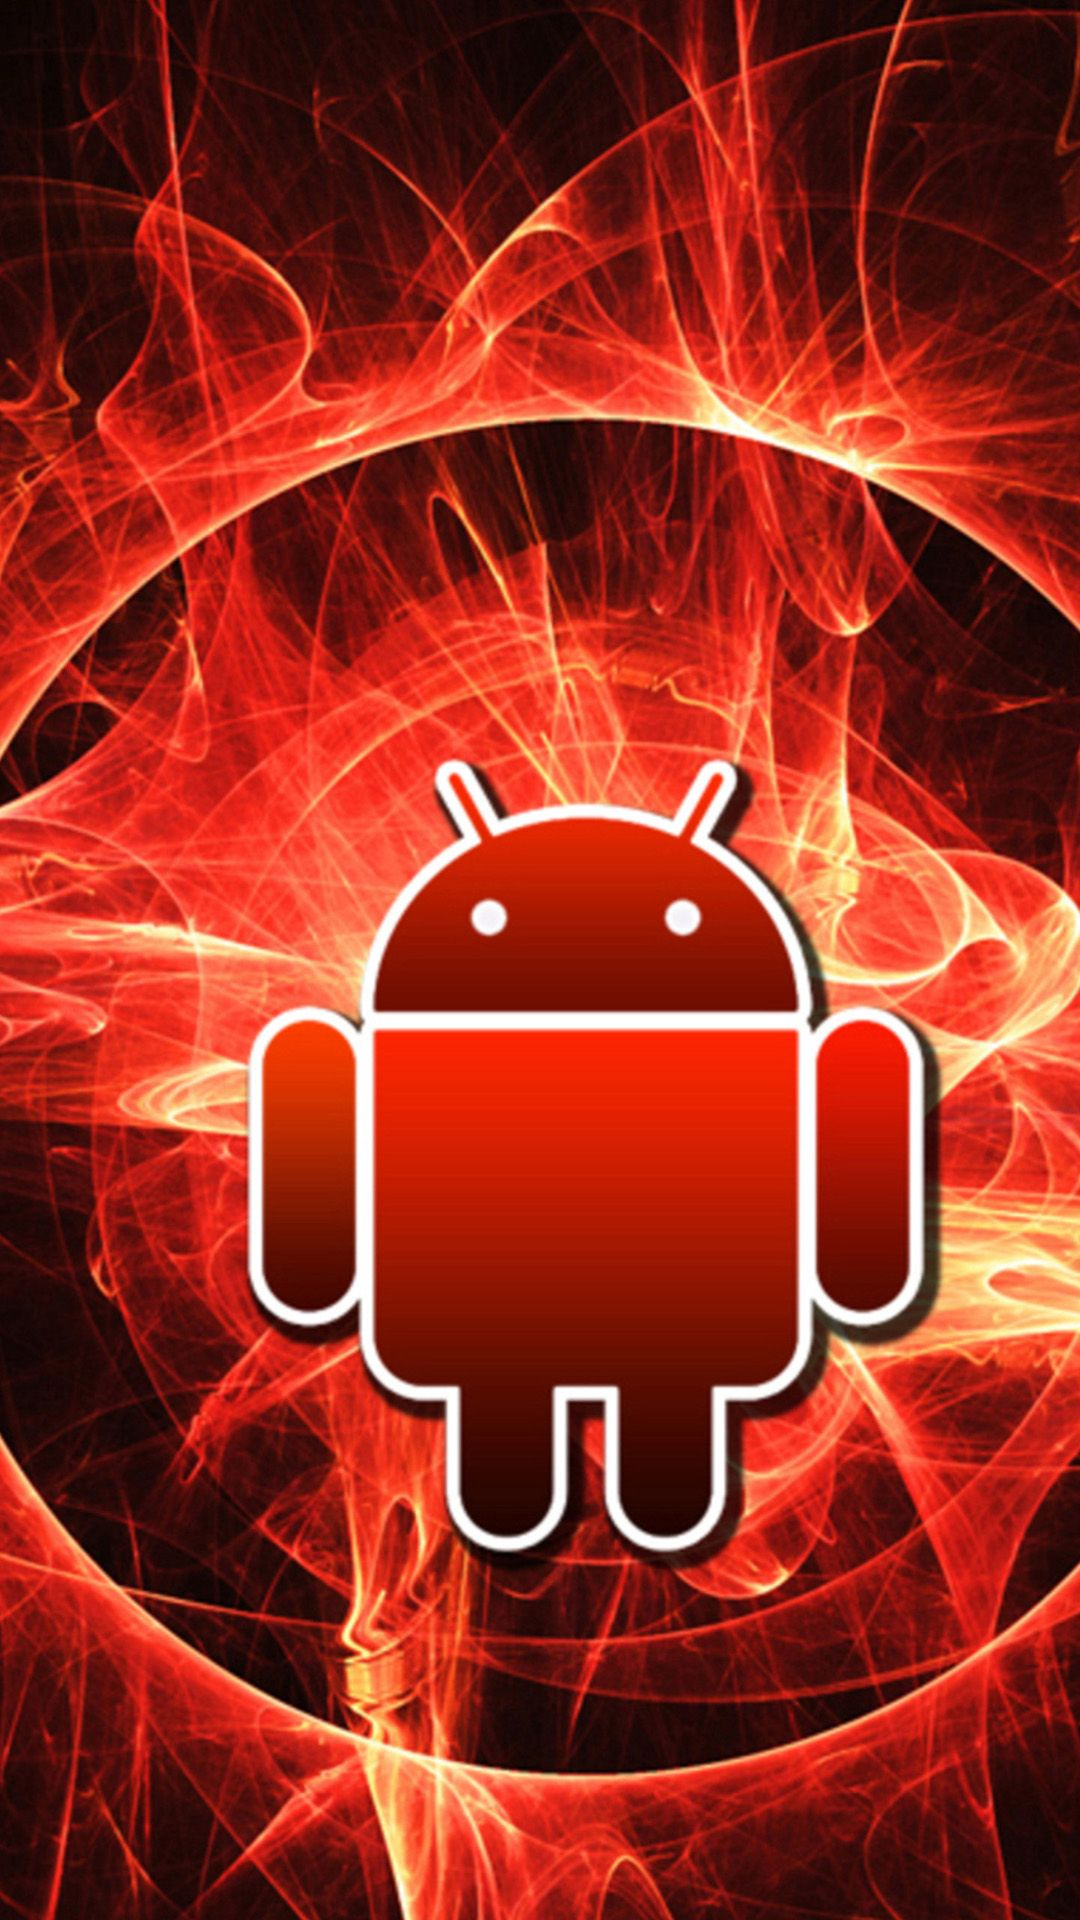 1080x1920 Android Fire Smartphone Wallpapers HD ⋆ GetPhotos